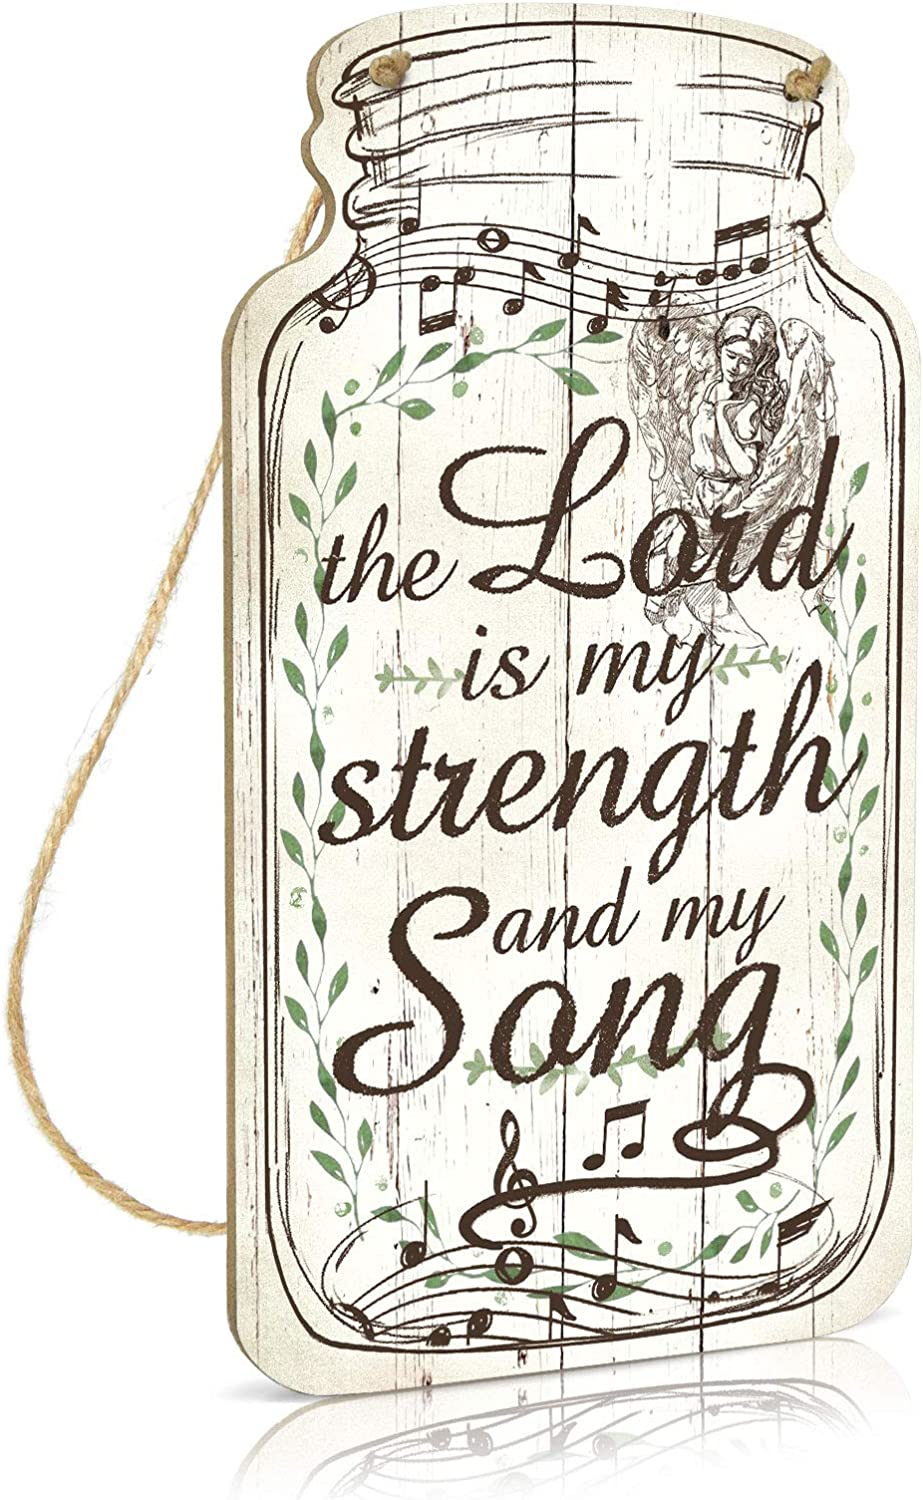 Putuo Decor God Mason Jar Sign, Farmhouse Decor, 8.3x4.5 Inches Rustic Wood Hanging Plaque for Home, Living Room, Kitchen, Bedroom - The Lord is My Strength and My Song